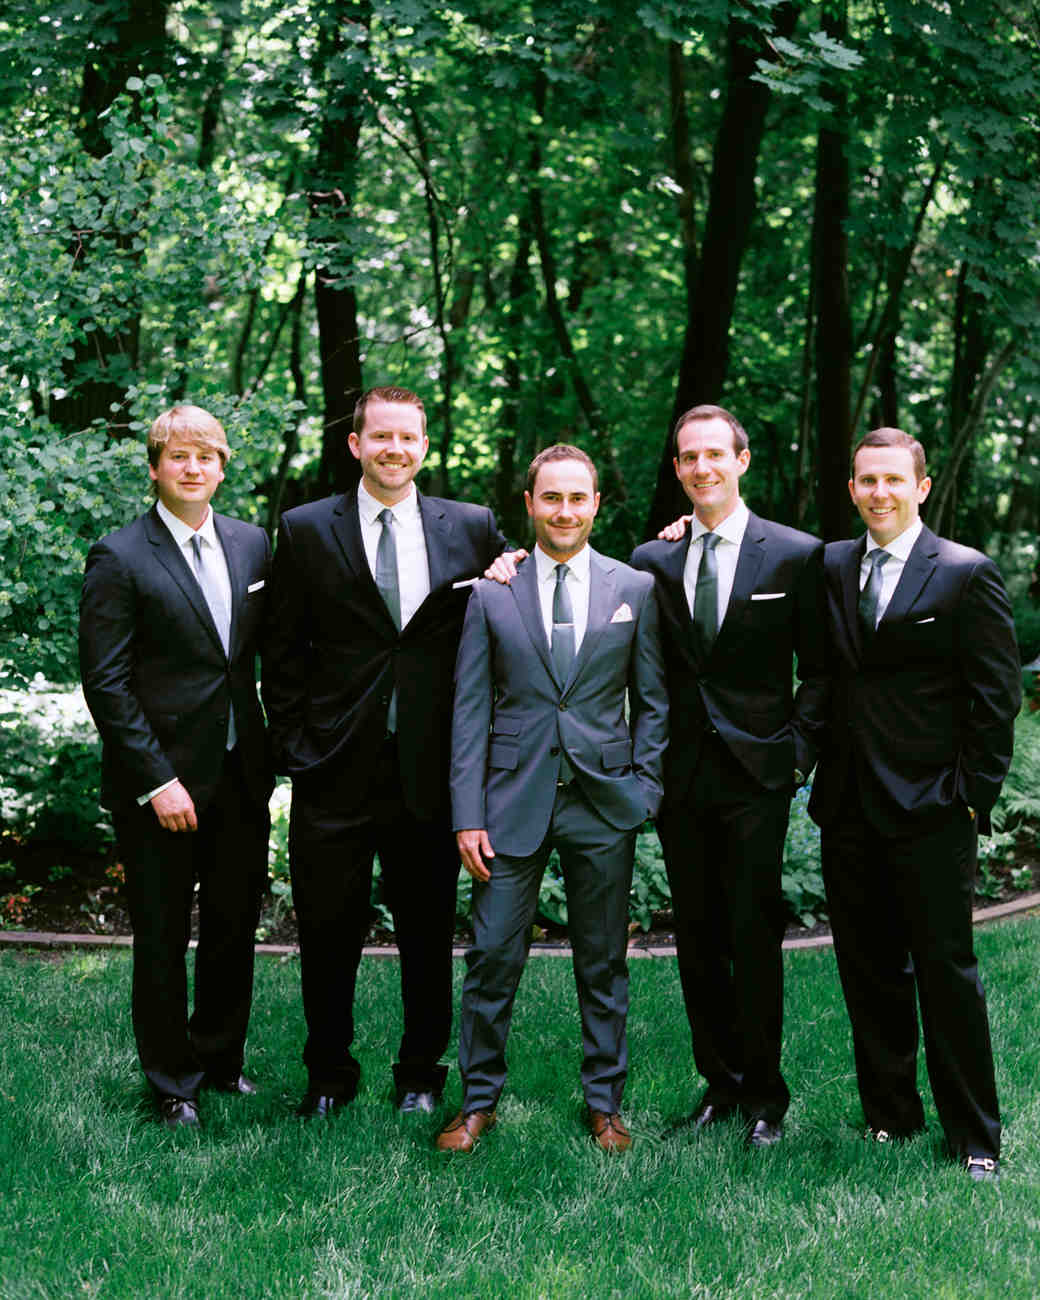 ally-adam-wedding-groomsmen-031-s111818-0215.jpg